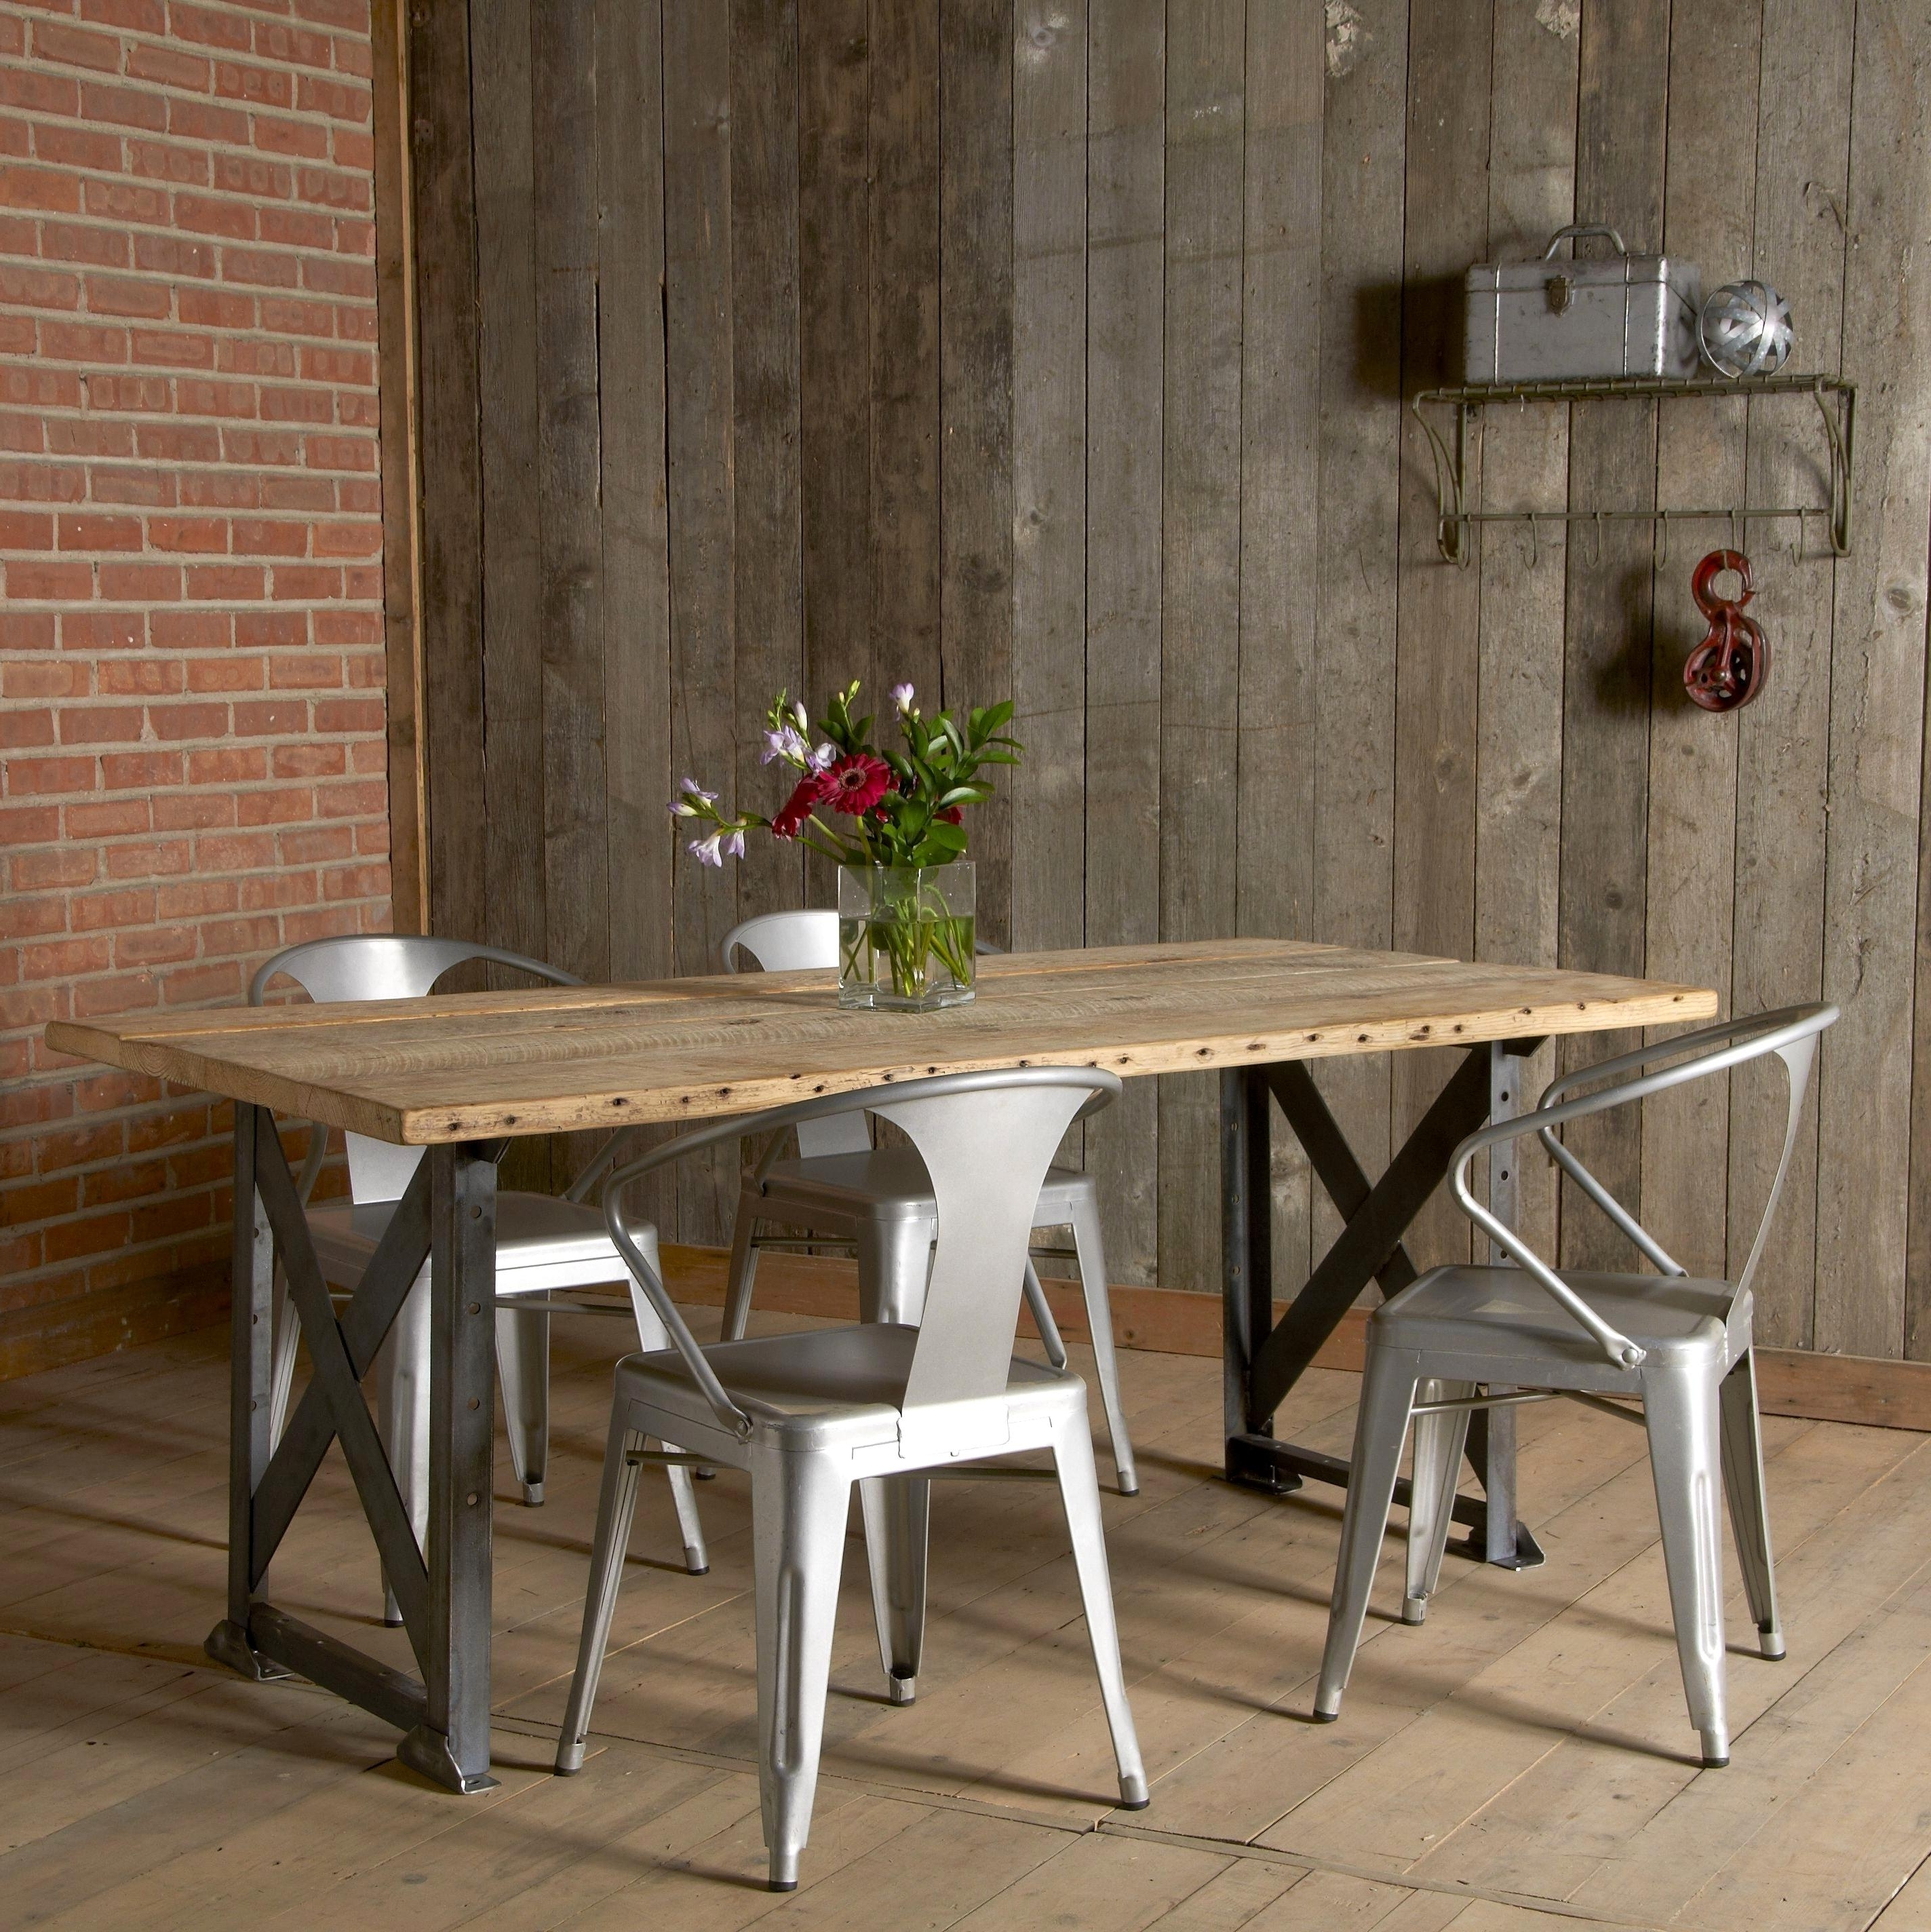 Fantastic Industrial Style Dining Table Wood Industrial Reclaimed For Most Popular Industrial Style Dining Tables (View 1 of 25)